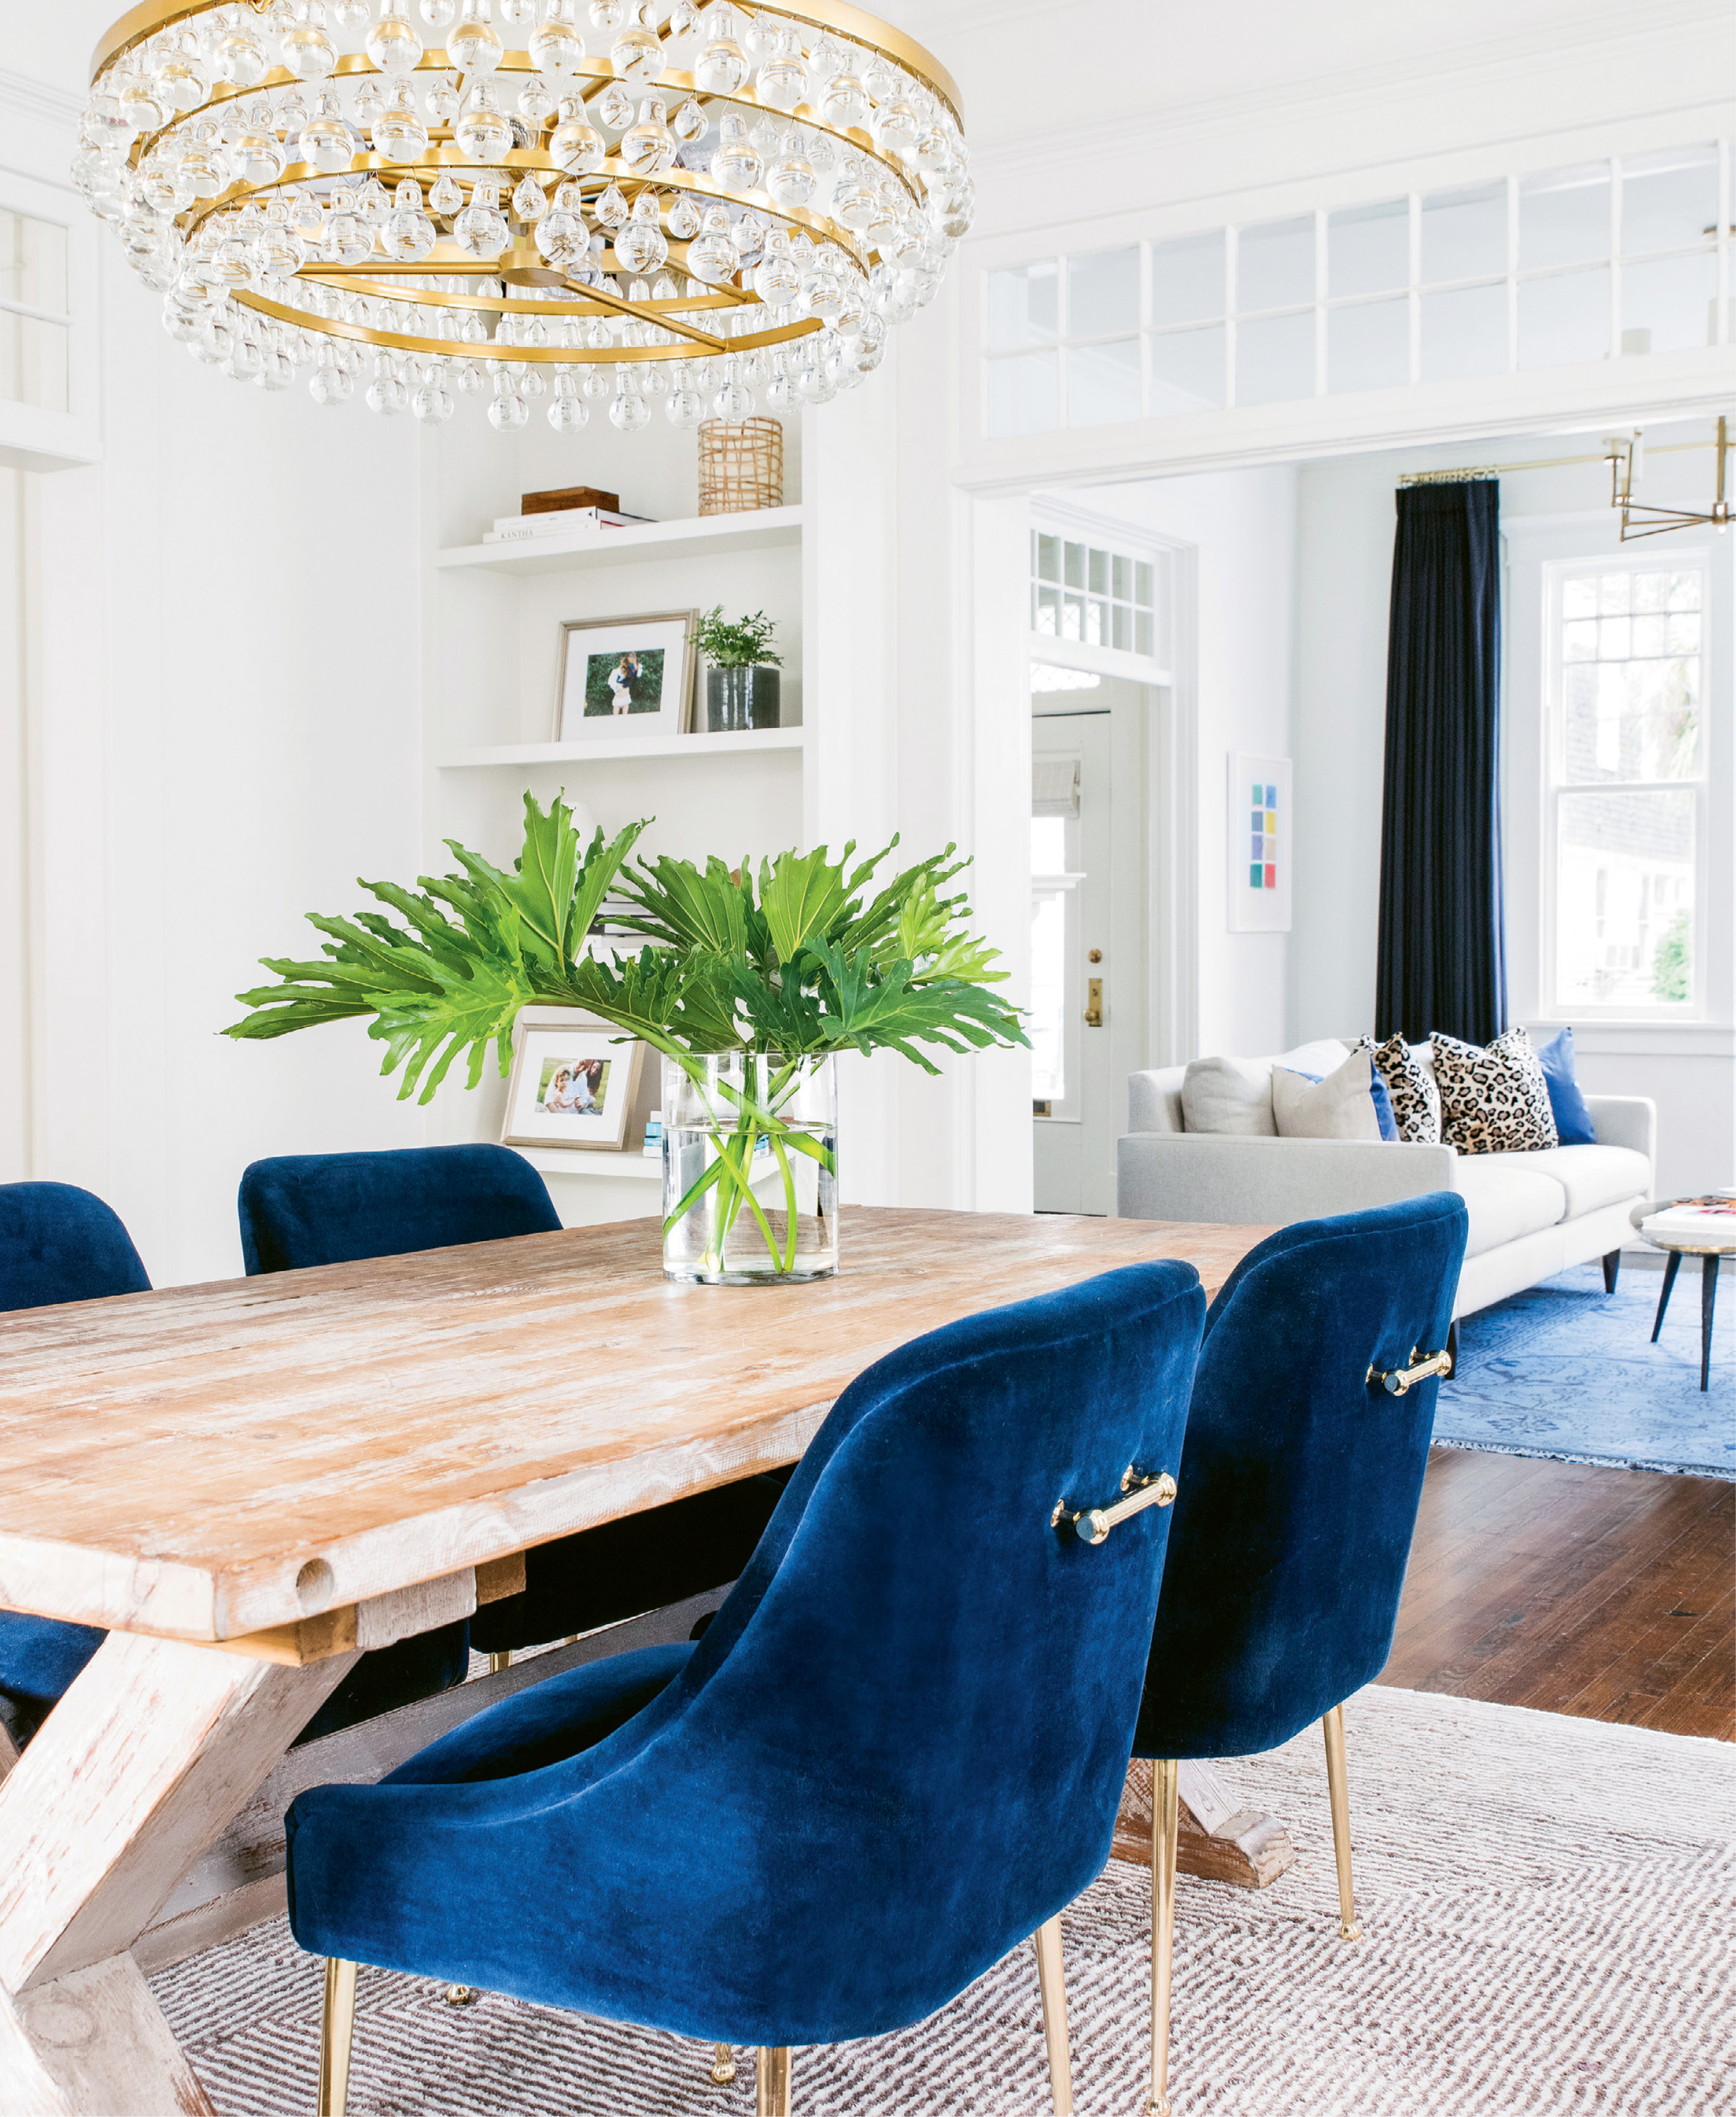 Lived-in Luxe - Alison and Parker Green's century-old home holds an eclectic mix of fab and functional furnishings in lieu of highbrow antiques—a perfect fit for a young family of four